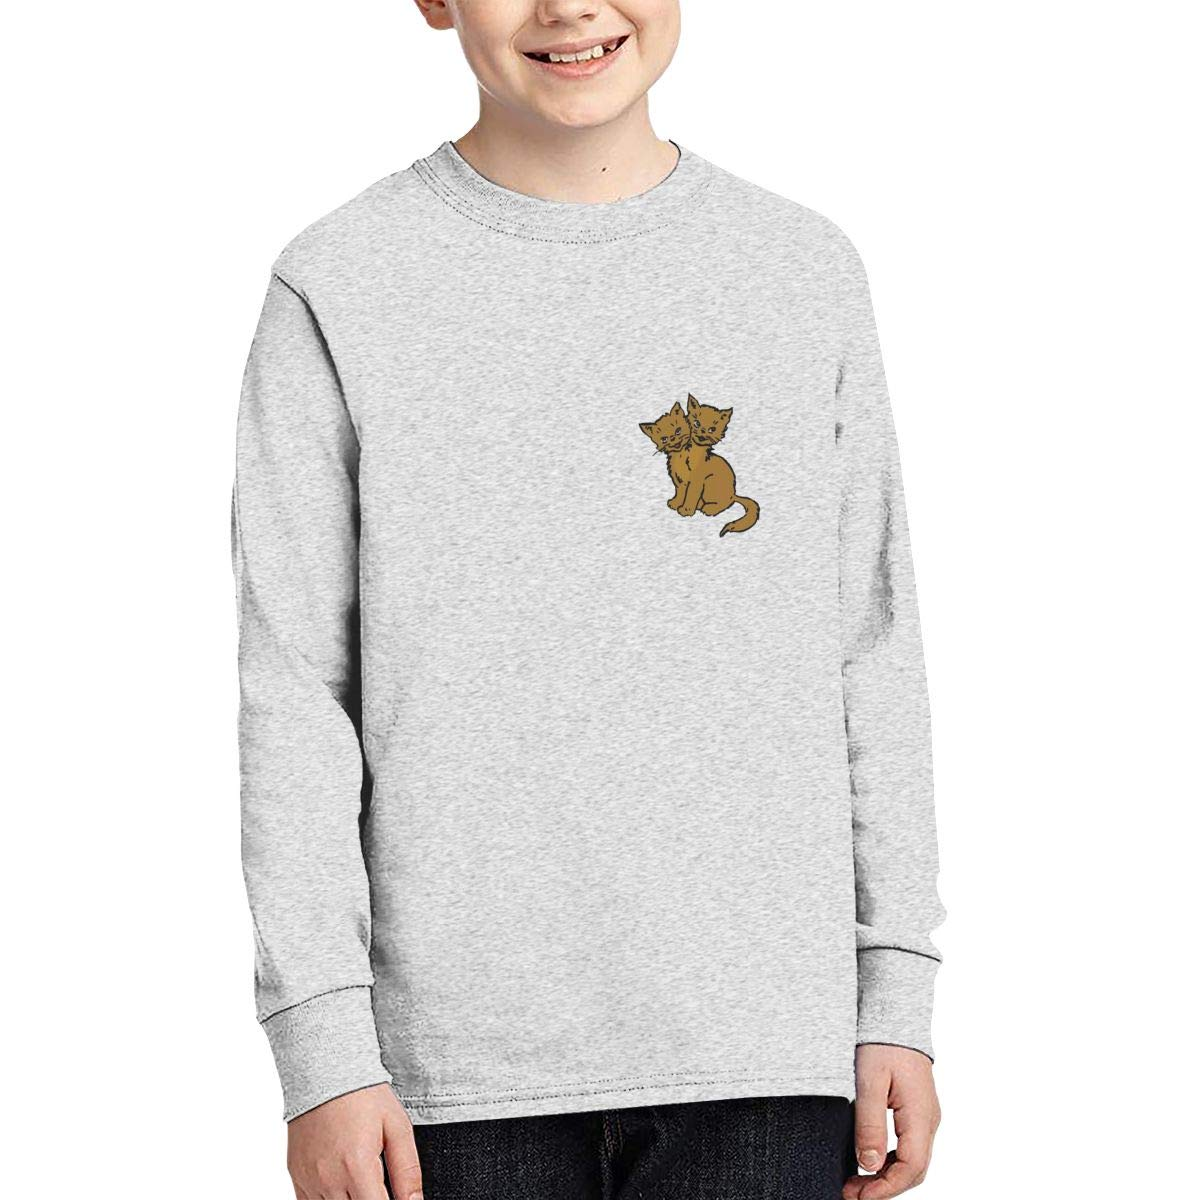 VIERYI Melvins Houdini Hond Logo Rock Band Heren Junior Long Sleeve T-Shirt Boys Korte Mouw Grappige Tee Shirts Black